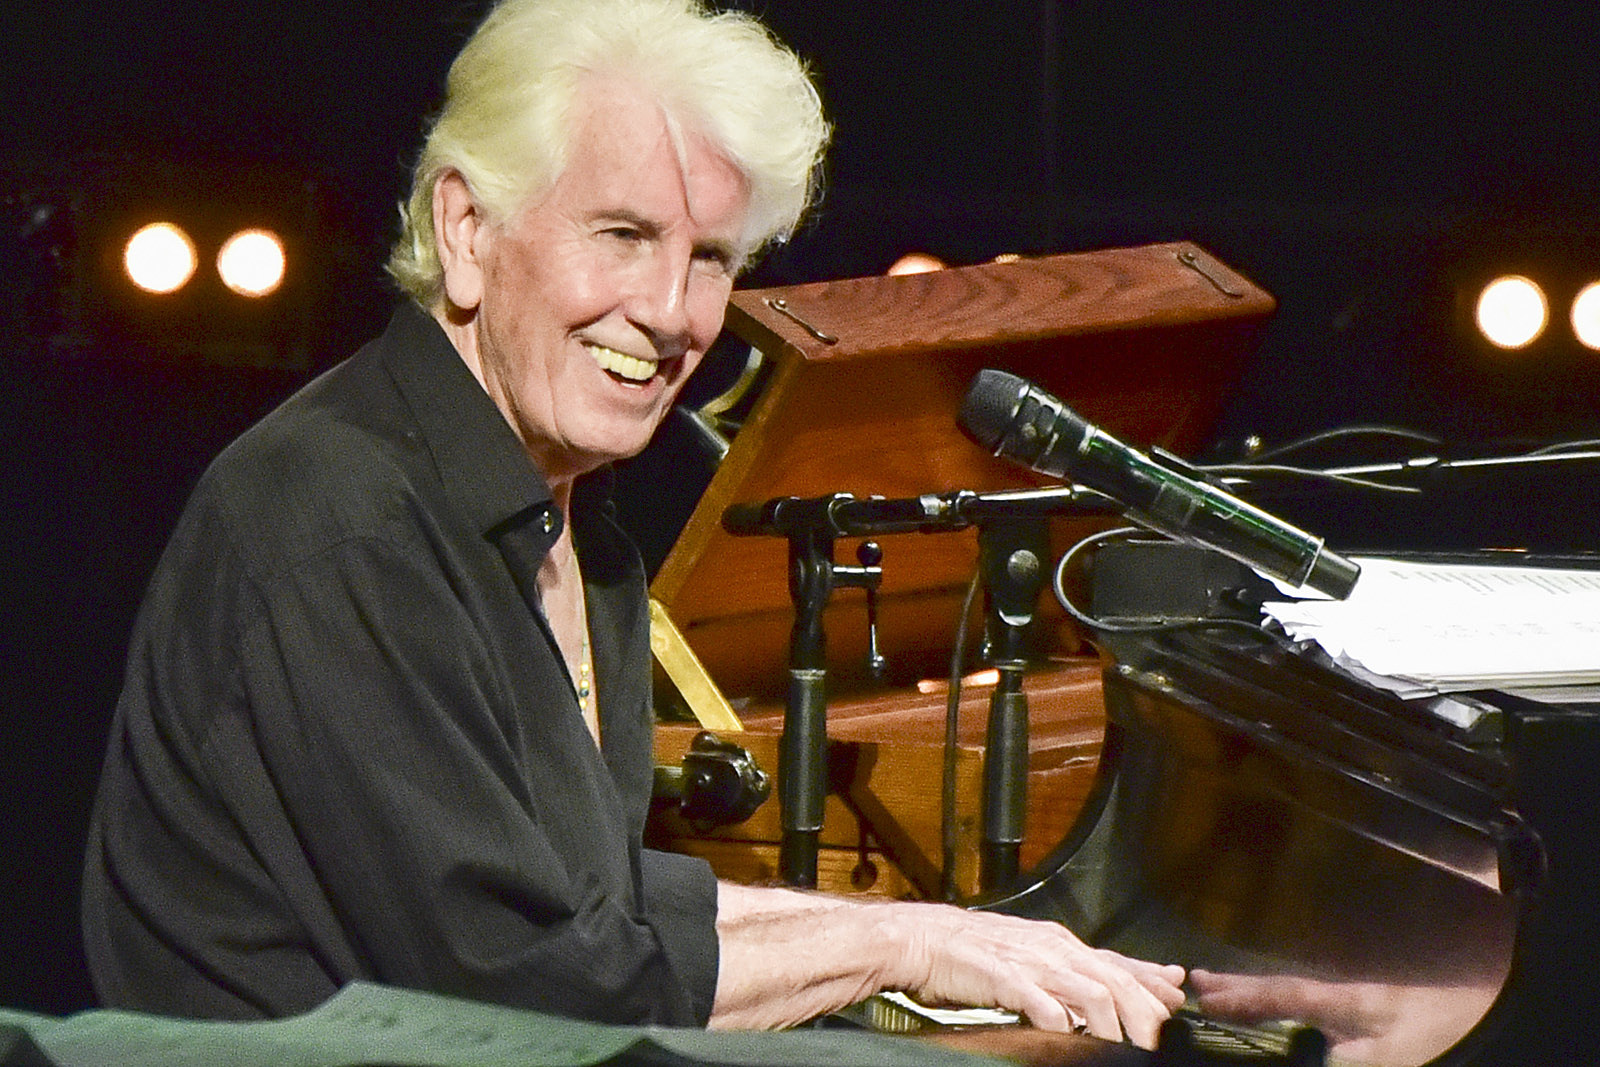 Graham Nash Recalls 'Be-Bop-A-Lula' Clause in Record Contract